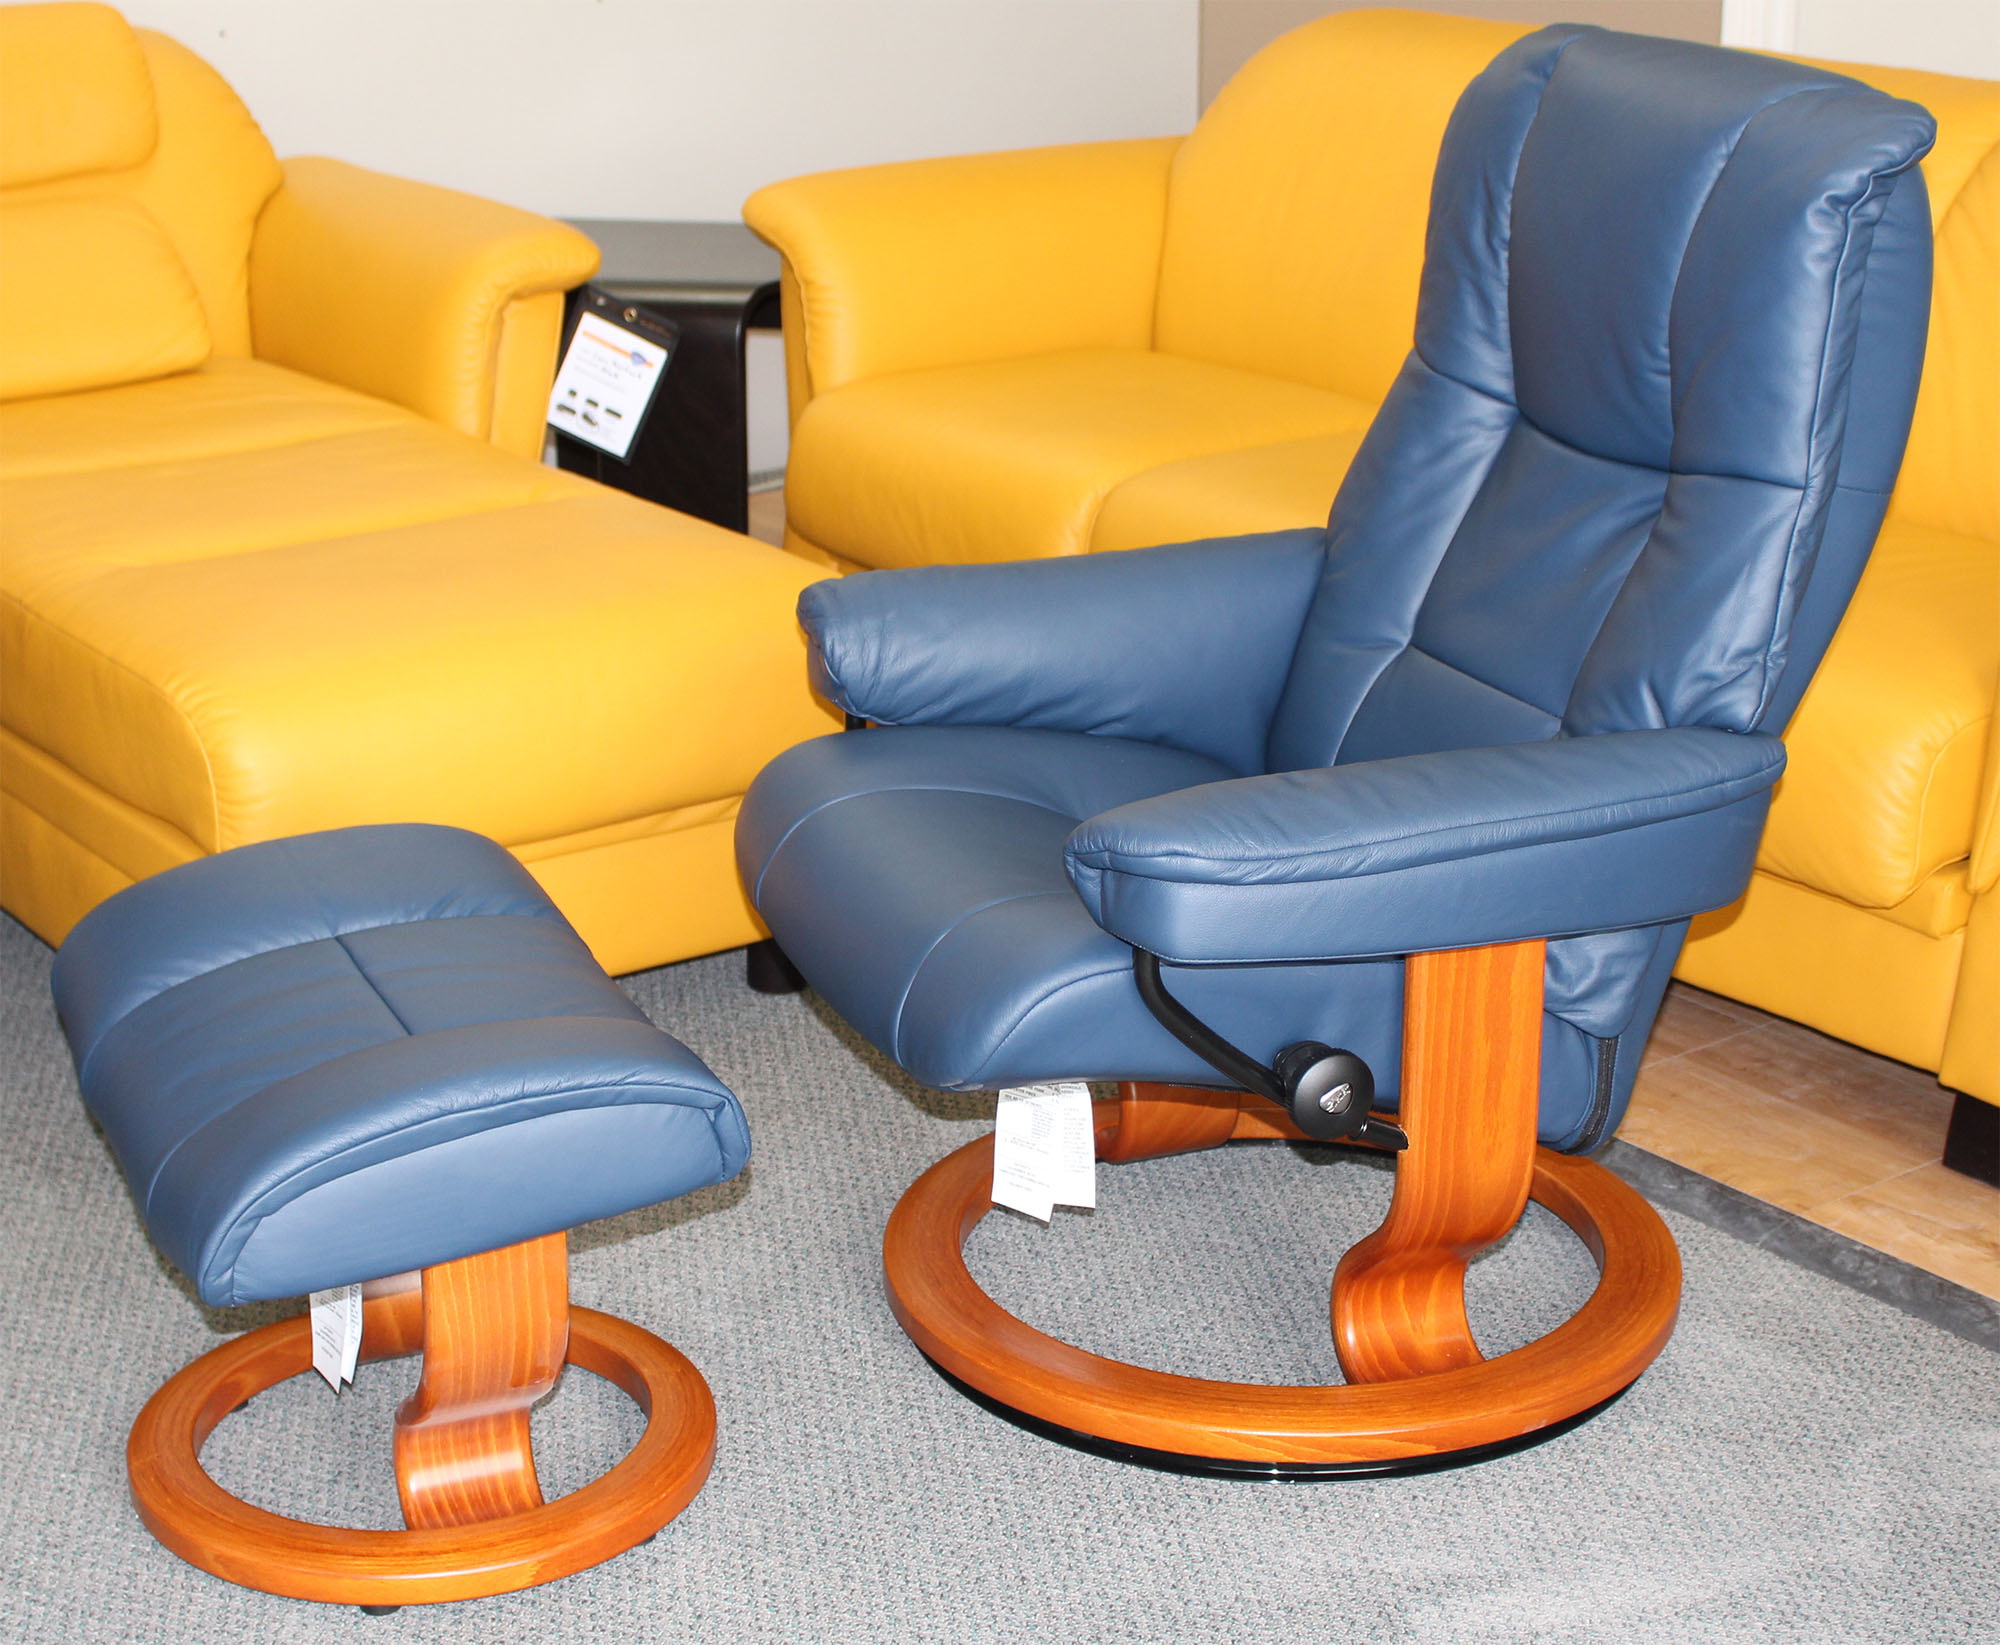 Awe Inspiring Stressless Chelsea Small Mayfair Paloma Oxford Blue Leather Recliner Chair By Ekornes Pdpeps Interior Chair Design Pdpepsorg